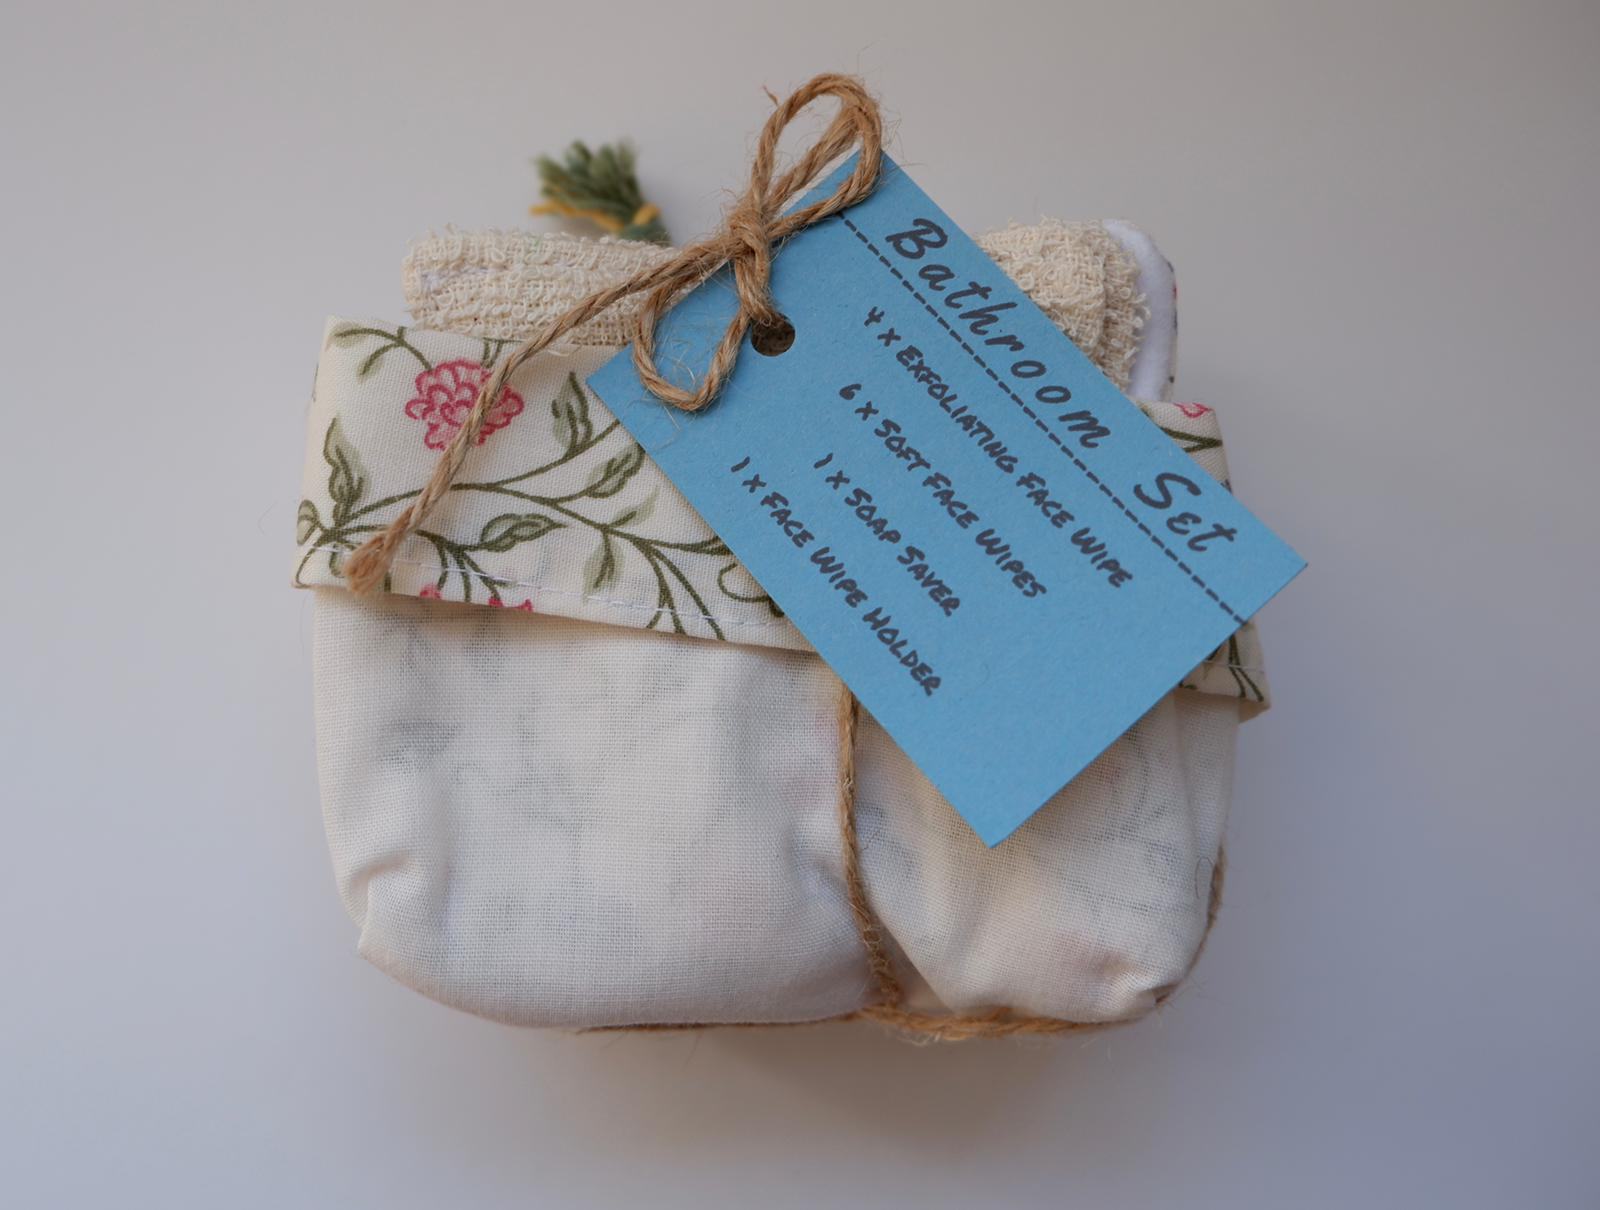 Jefferson Crafts Bathroom Sets of reusable face wipes and a soap saver - floral design